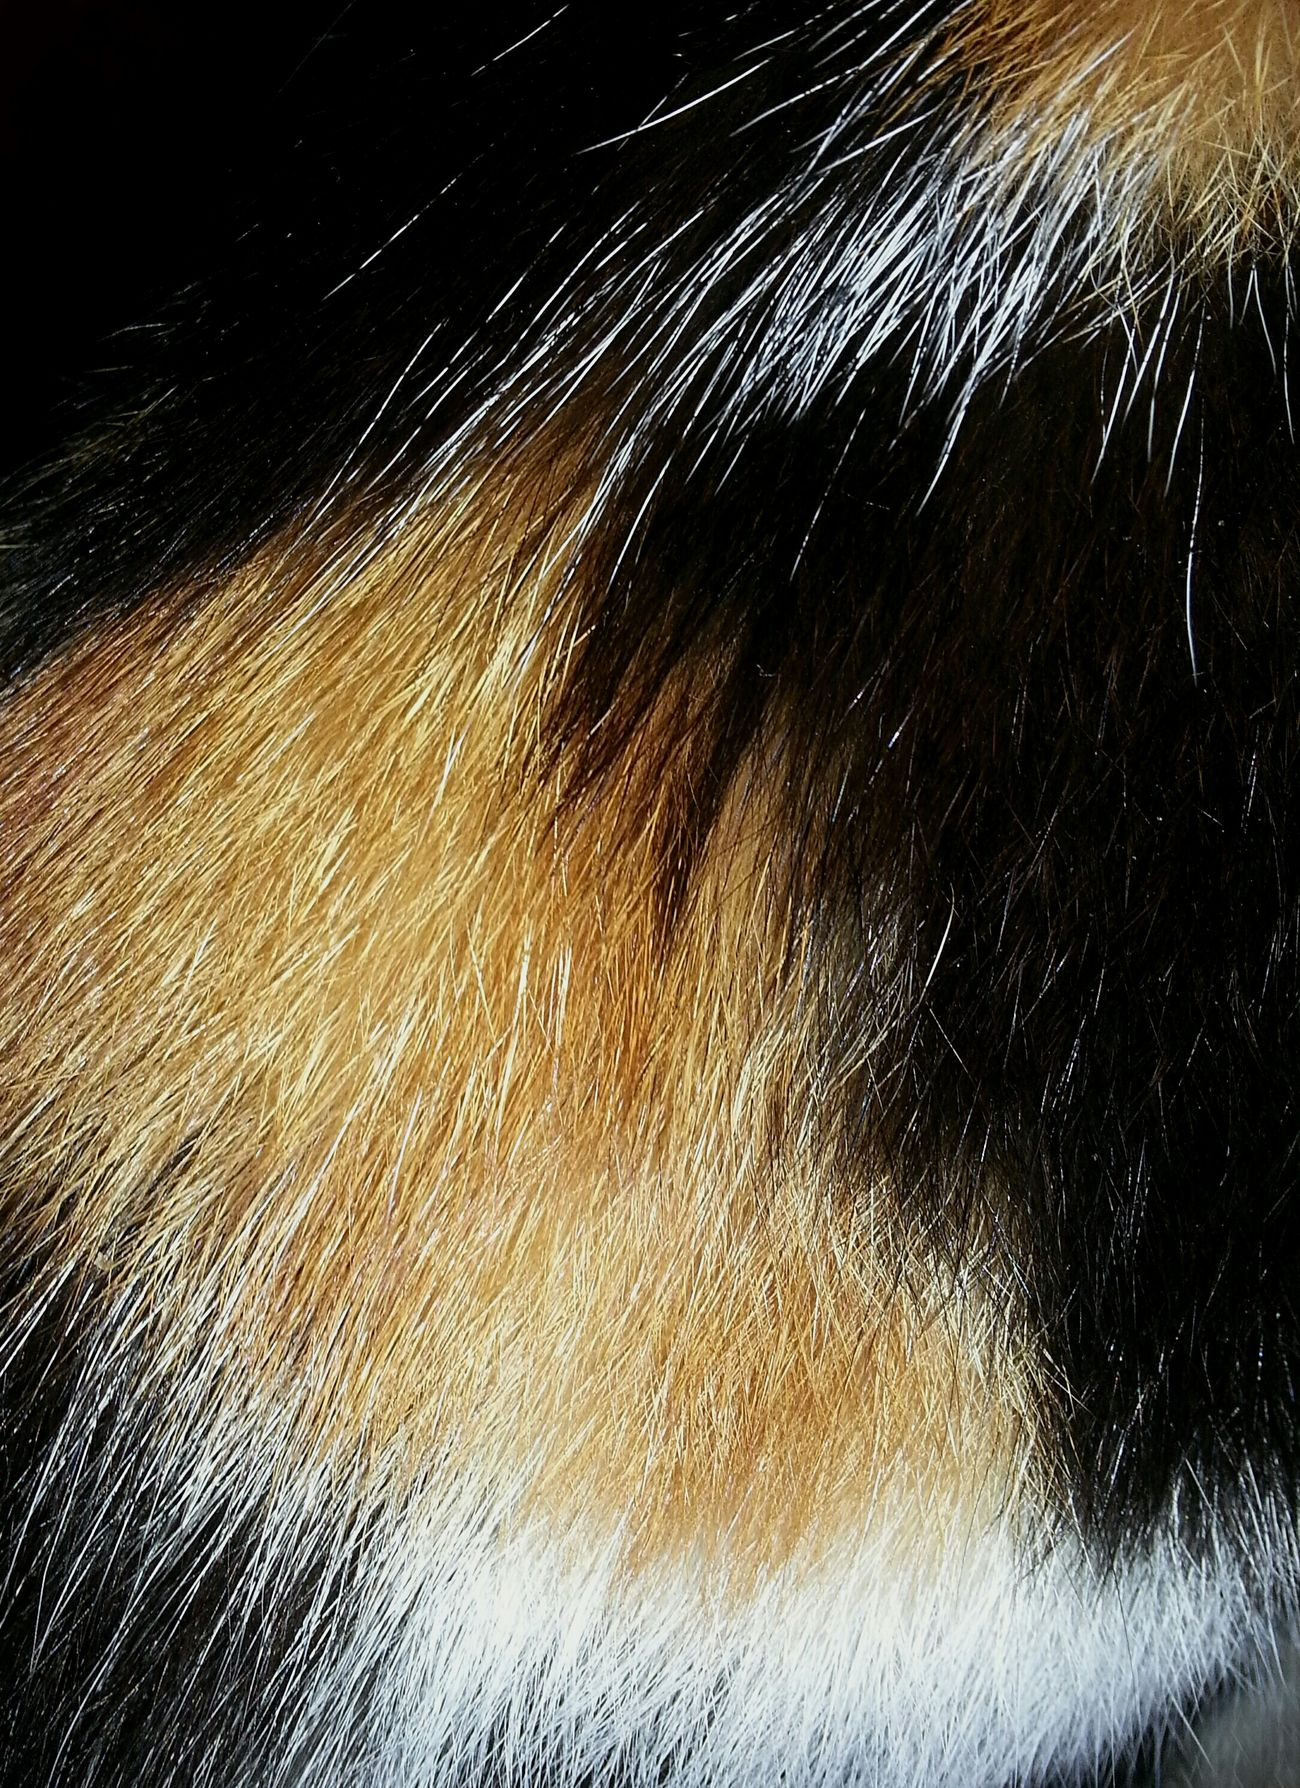 Motion Abstract No People Close-up Nature Beauty In Nature Focus Taking Photos Close Up Non-urban Scene Cat Cats Cat♡ Cat Lovers Cats Of EyeEm Animals Animal Themes Cute Pets Cute Cats Fur Coat Hair Hairstyle Colorful Colors